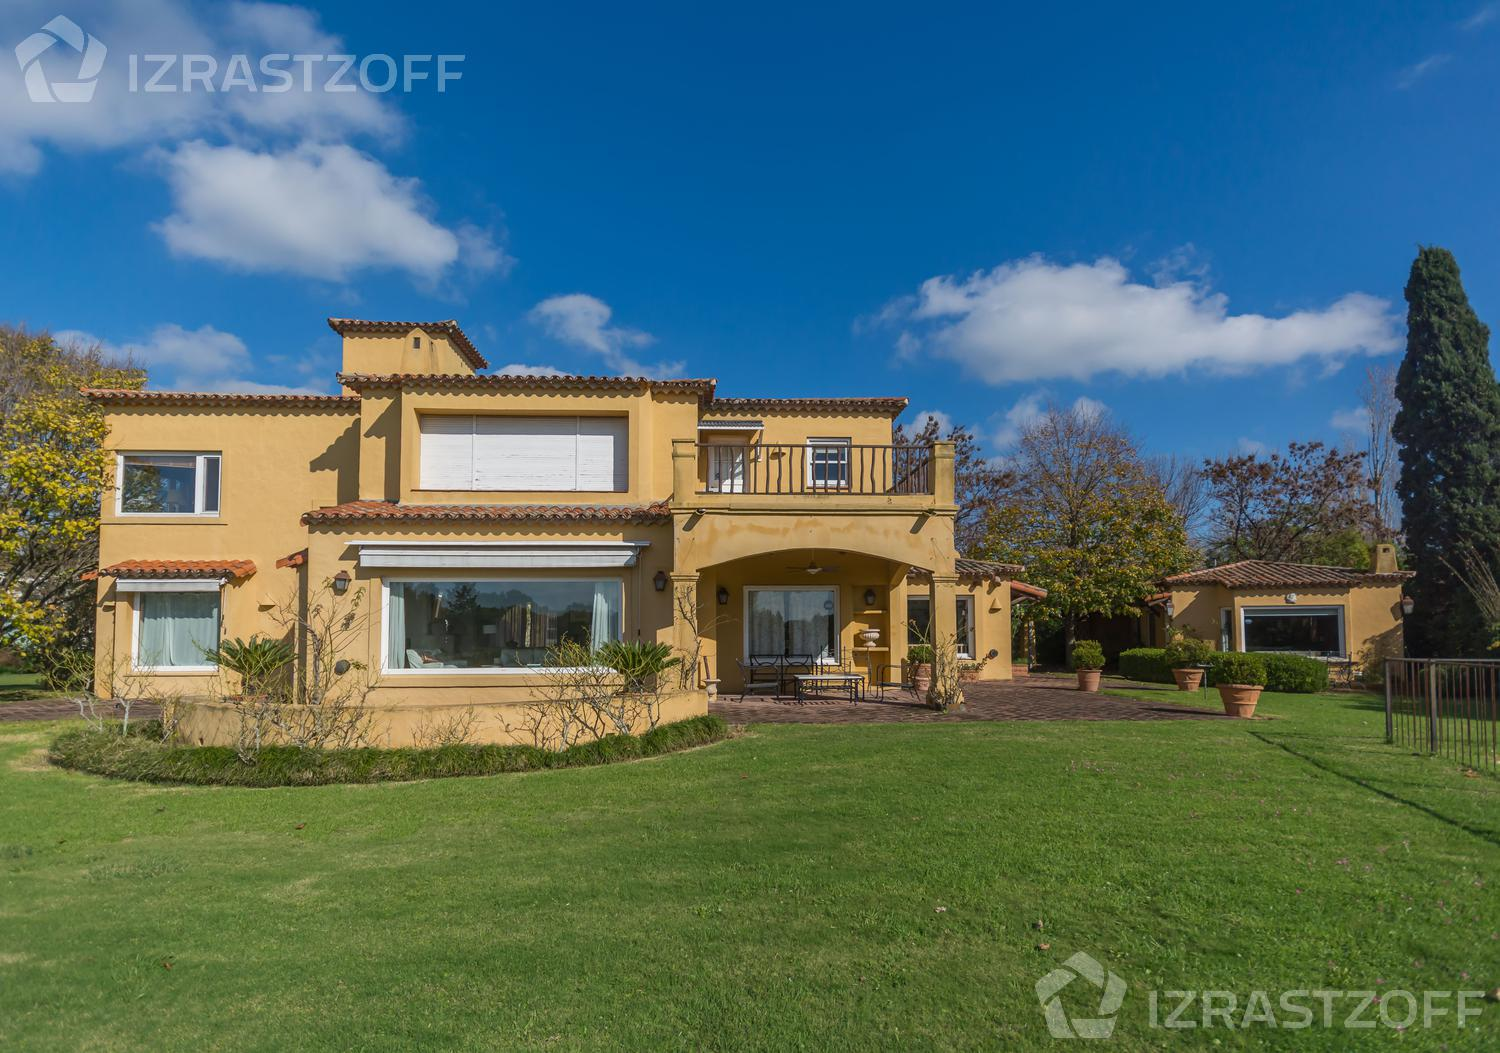 Casa-Venta-Martindale C.C-Matindale Country Club